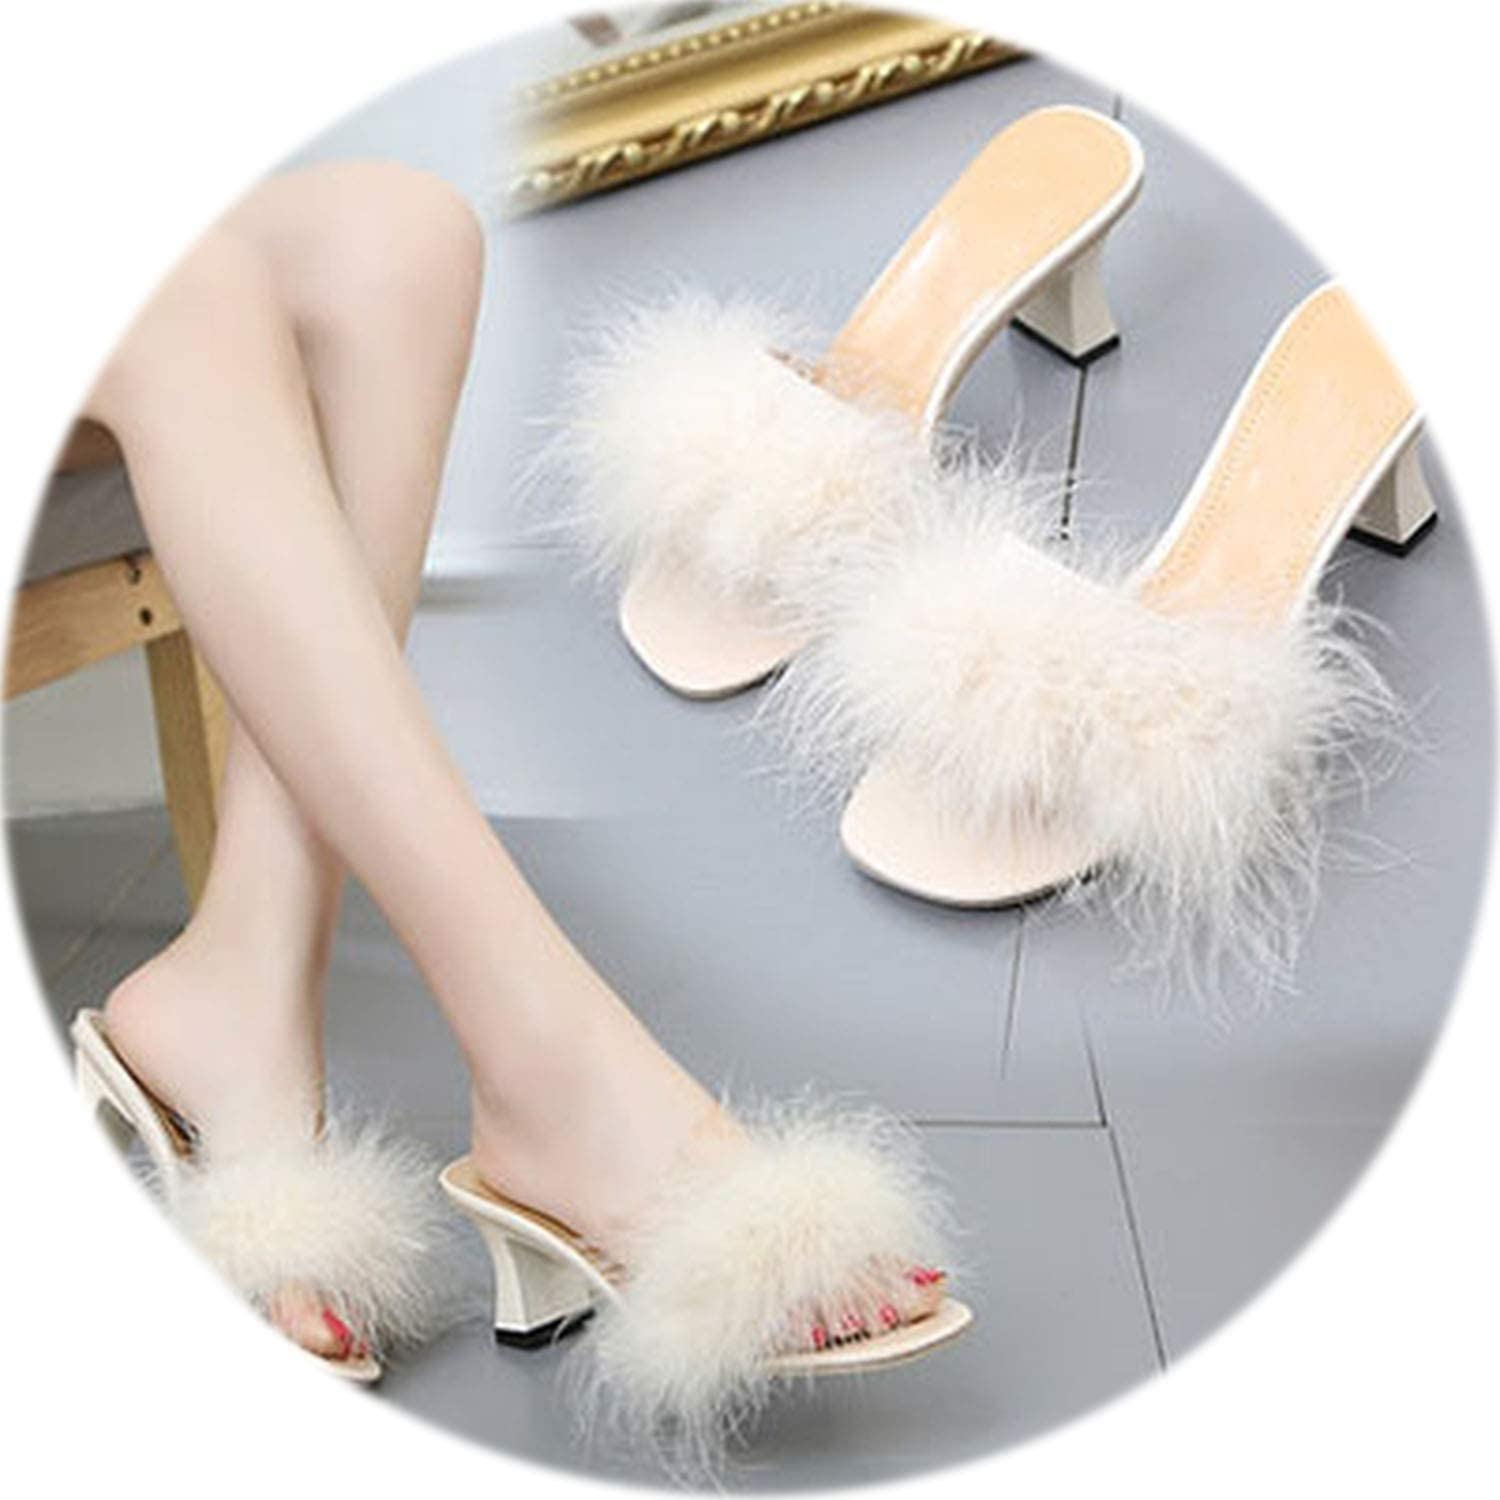 New Fur Furry Ostrich Feather Thick Heels Slippers Slides Fashion Ladies shoes Flip Flops Sandals Sexy Party shoes